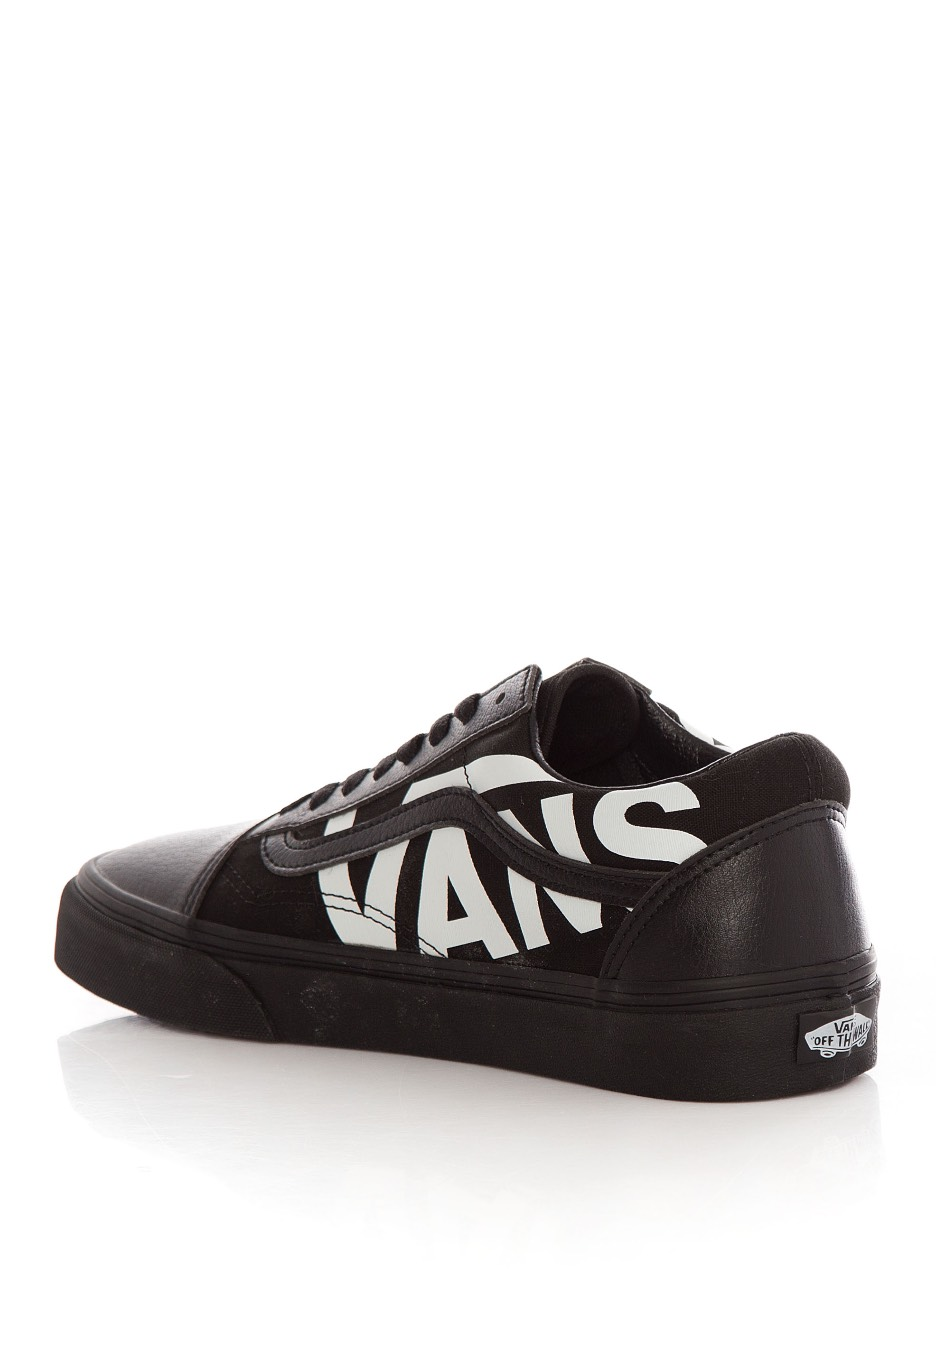 Vans Shoes Website